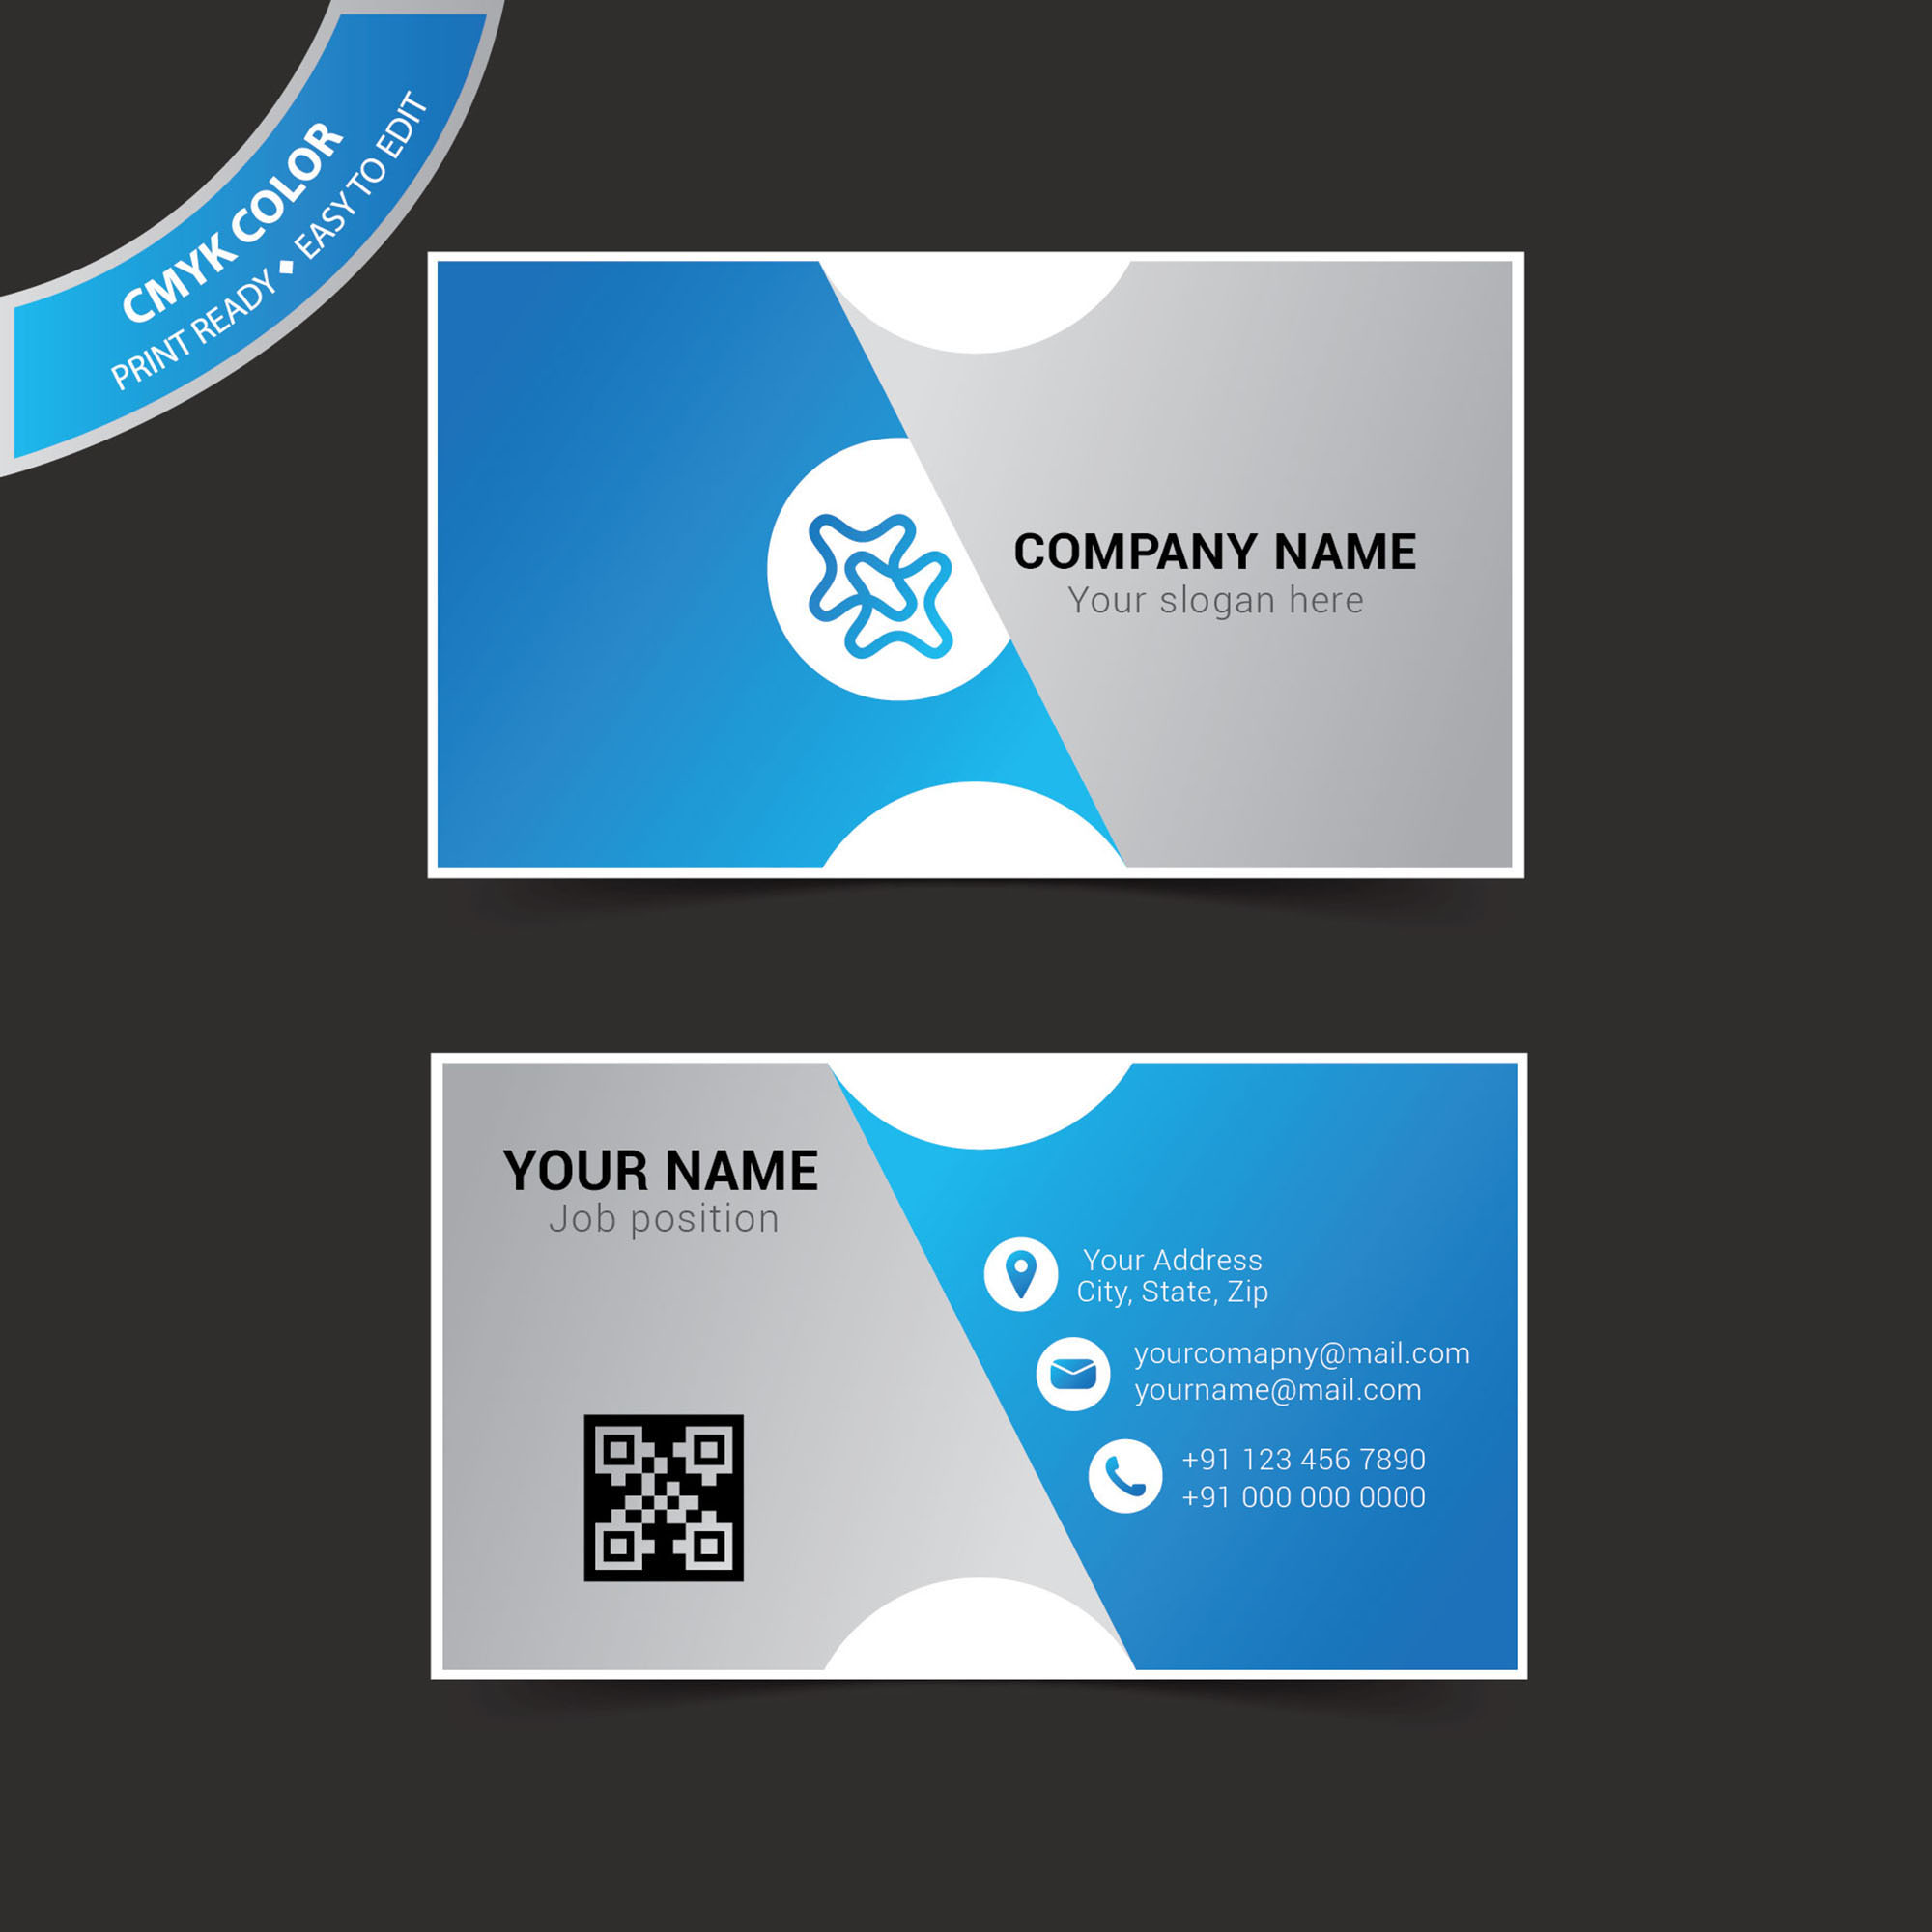 Business card template illustrator free vector wisxi abstract business card design business creative graphic layout template accmission Choice Image